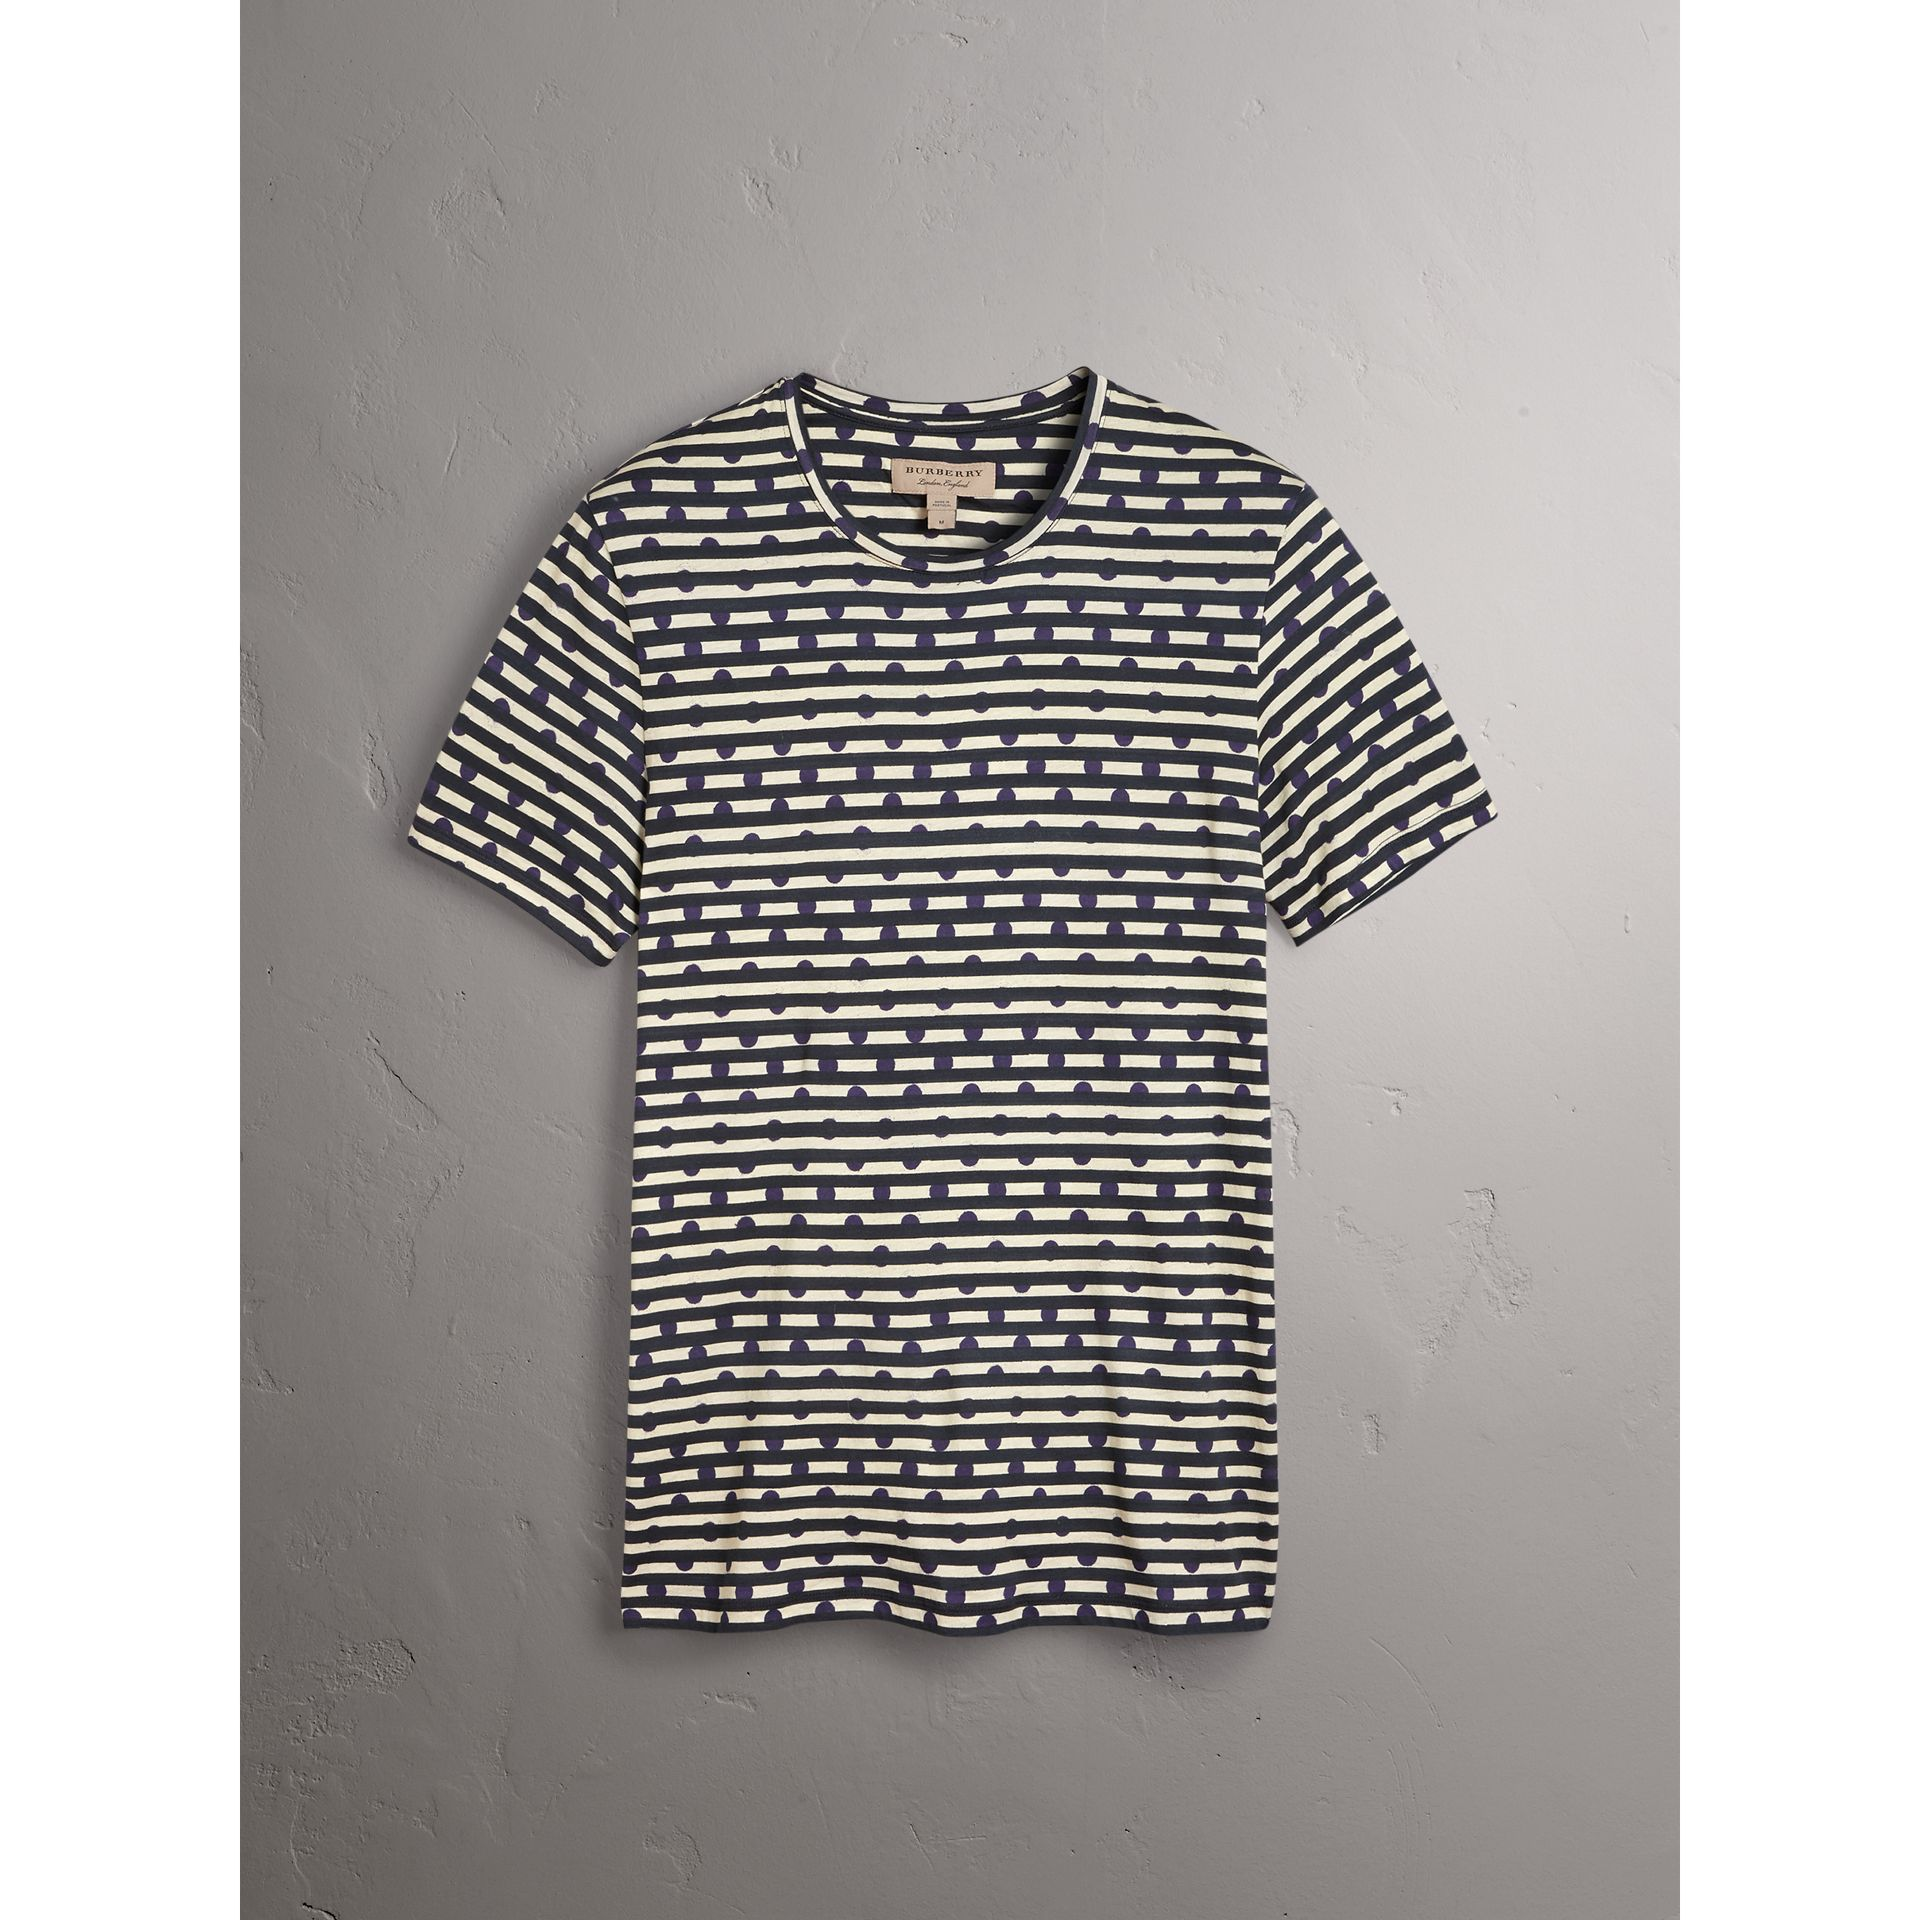 Spot and Stripe Print Cotton T-shirt in Navy - Men | Burberry - gallery image 3